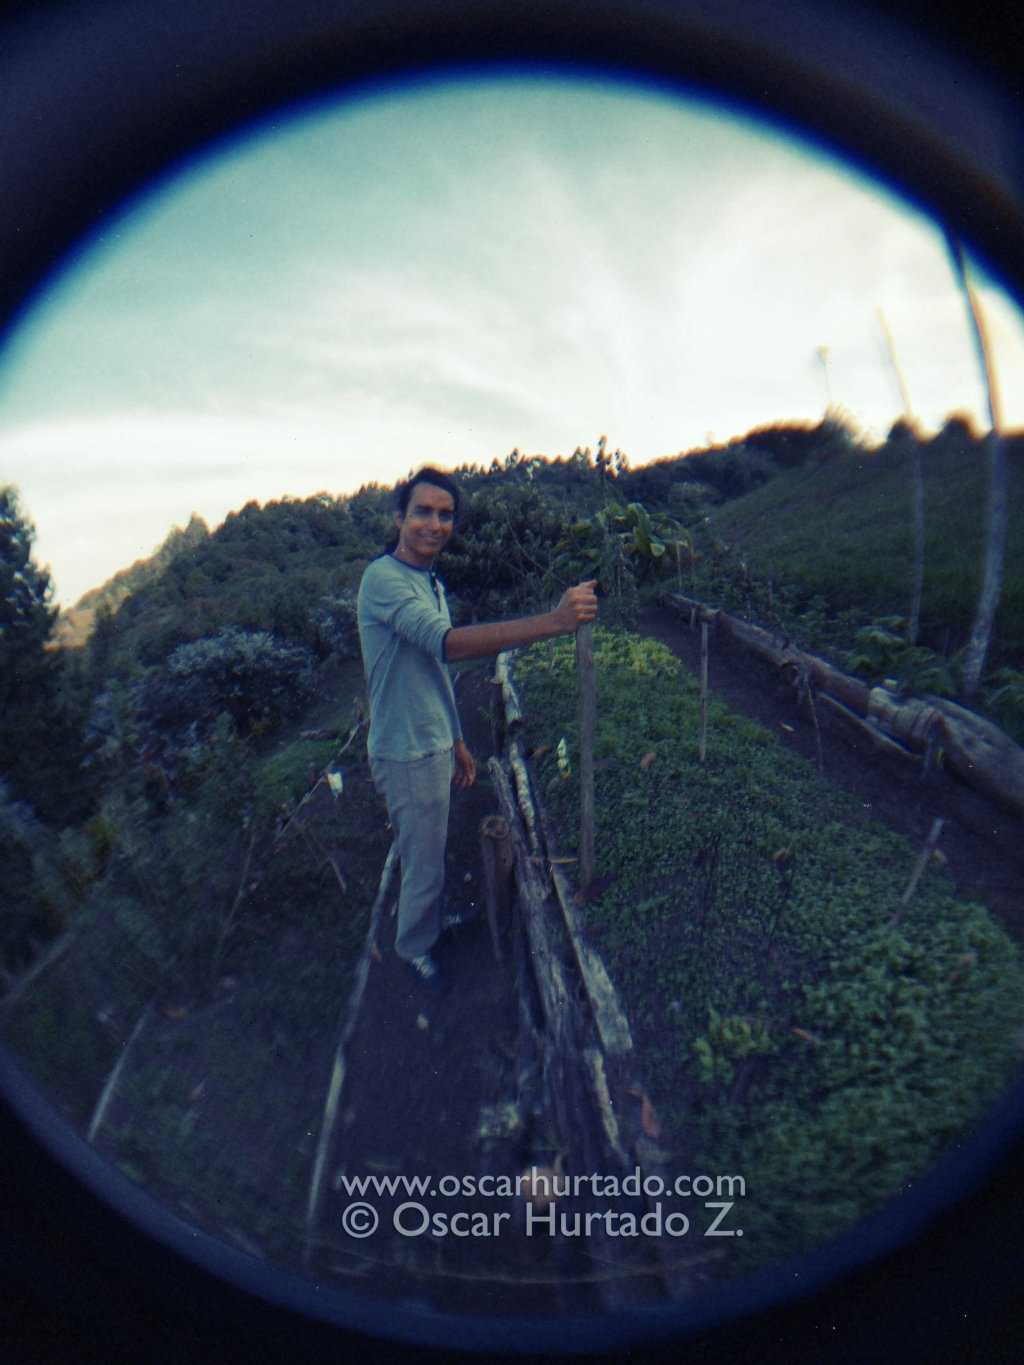 A portrait of my awesome brother shot with a fish-eye lens attached to my phone